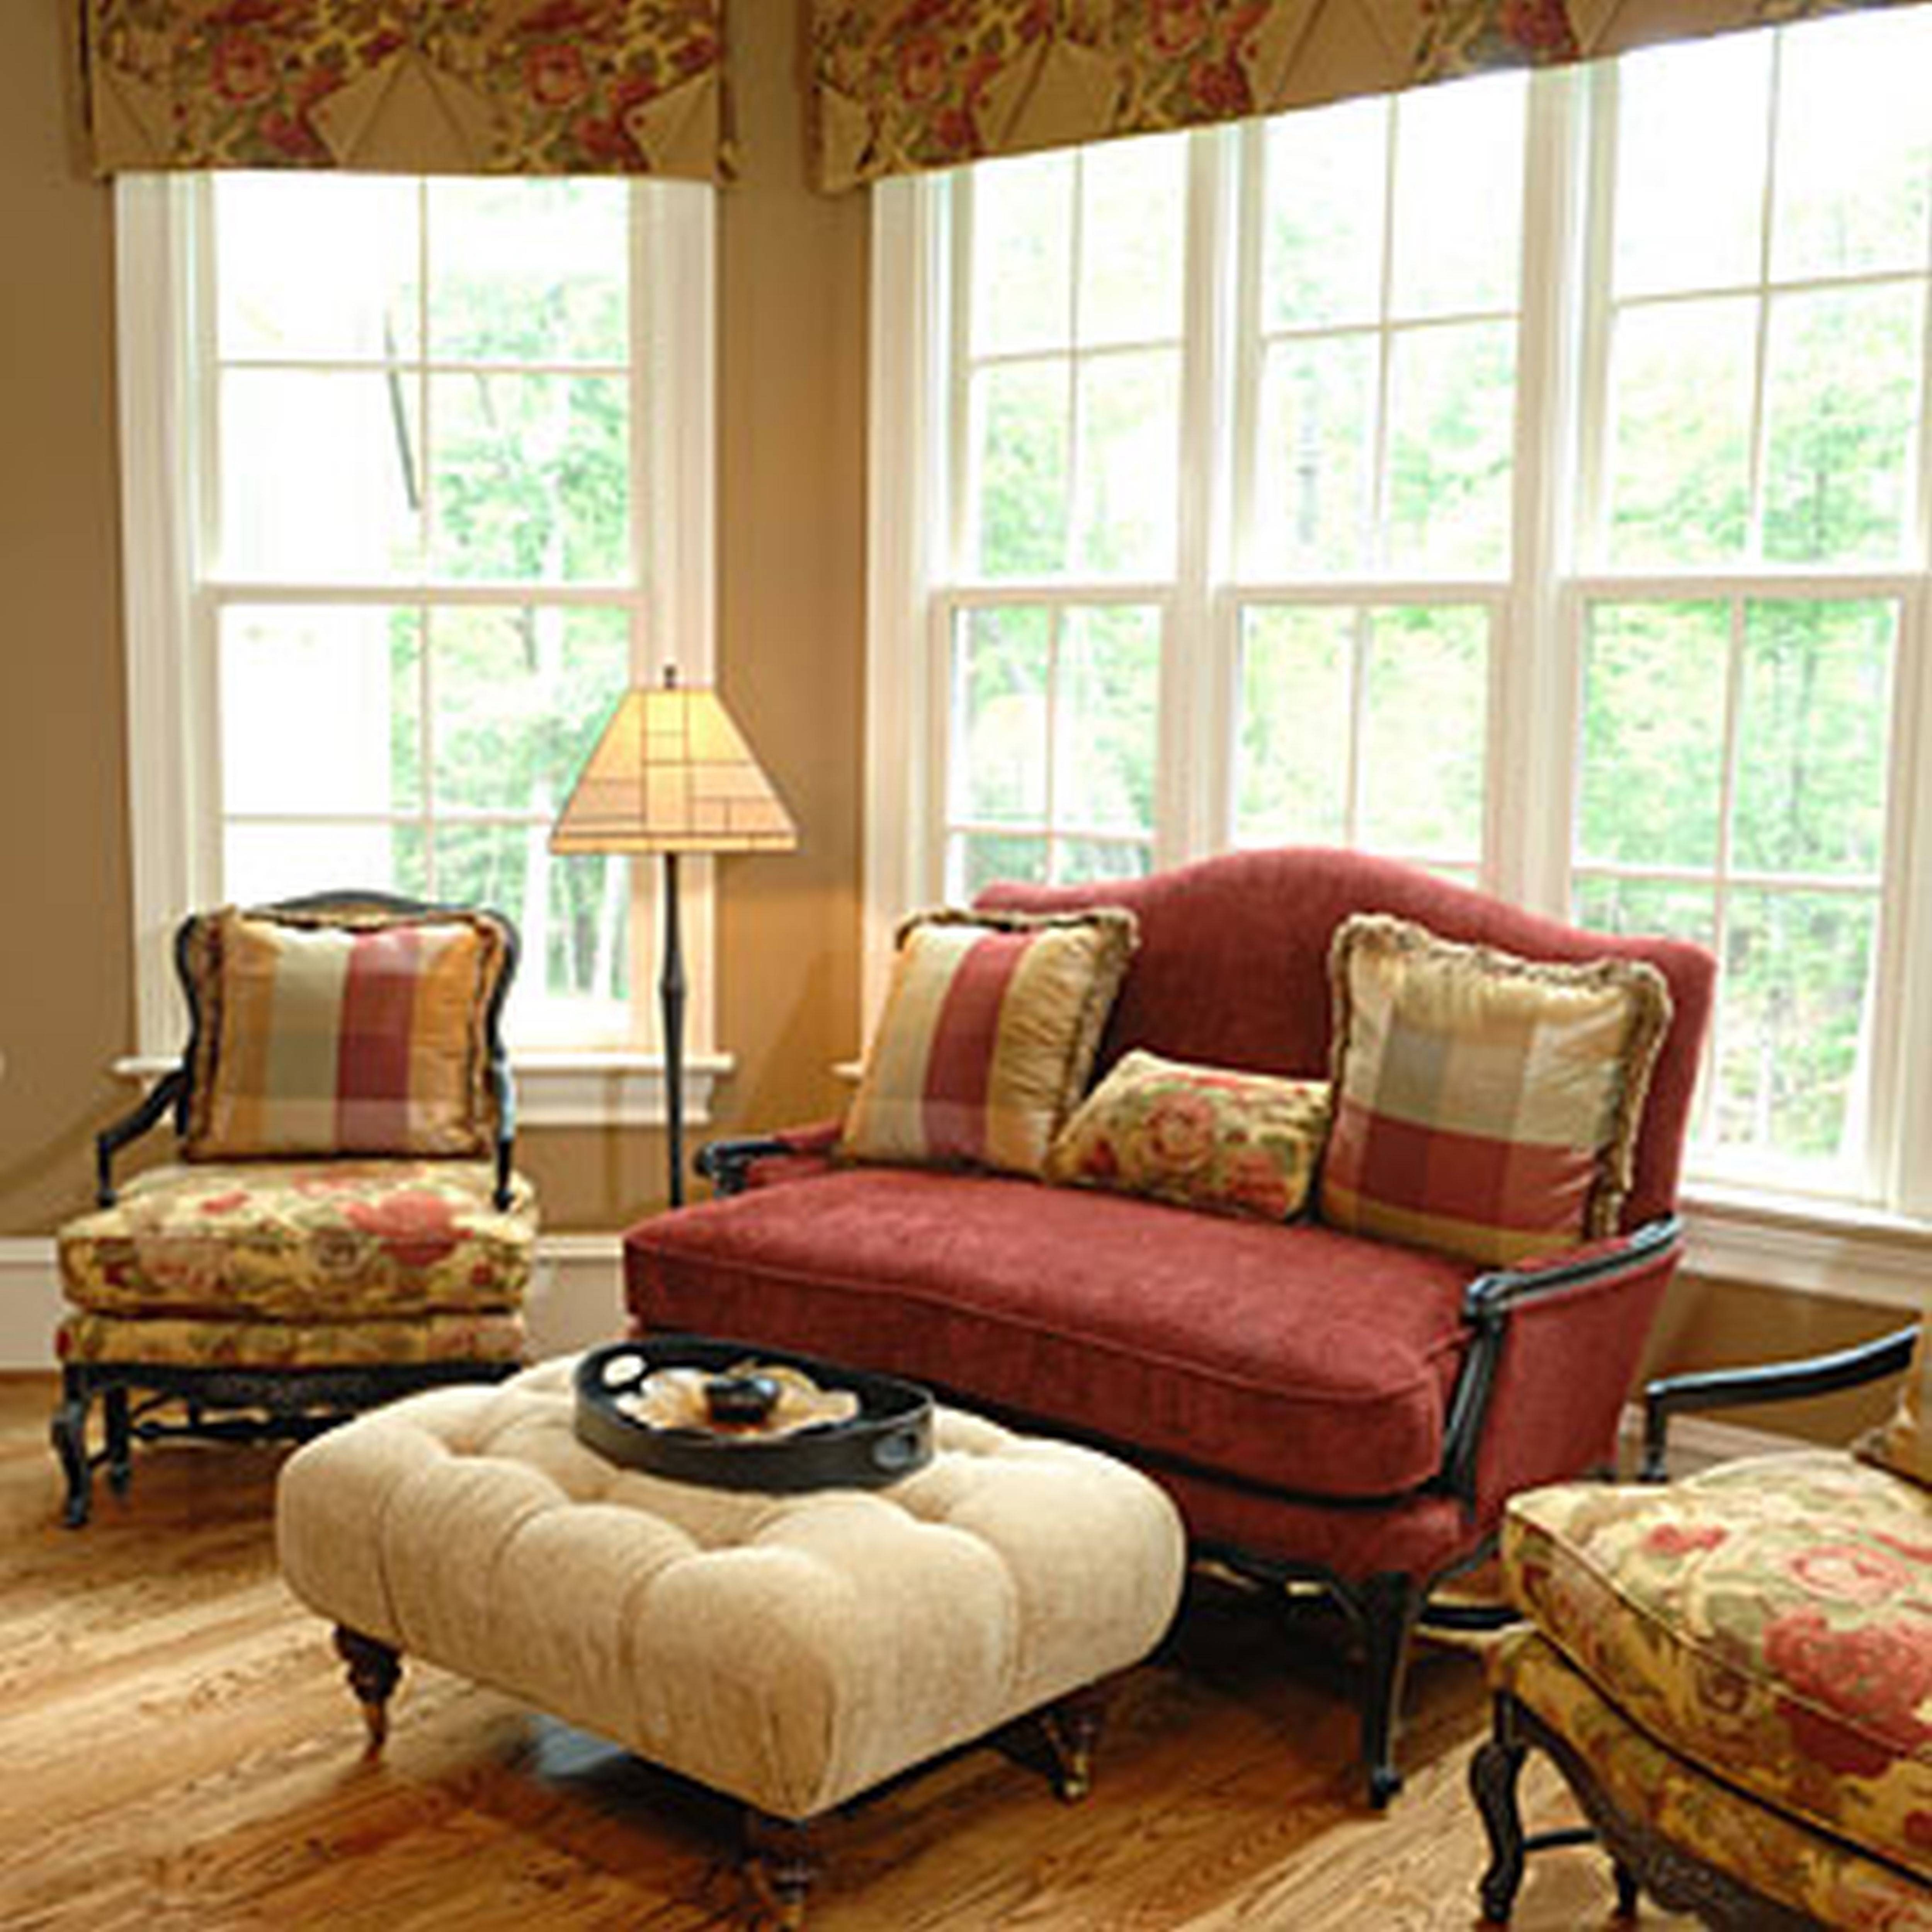 Sofas Center : Cream Colored Sofa Slipcover Color Sofas And within Cream Colored Sofa (Image 21 of 25)